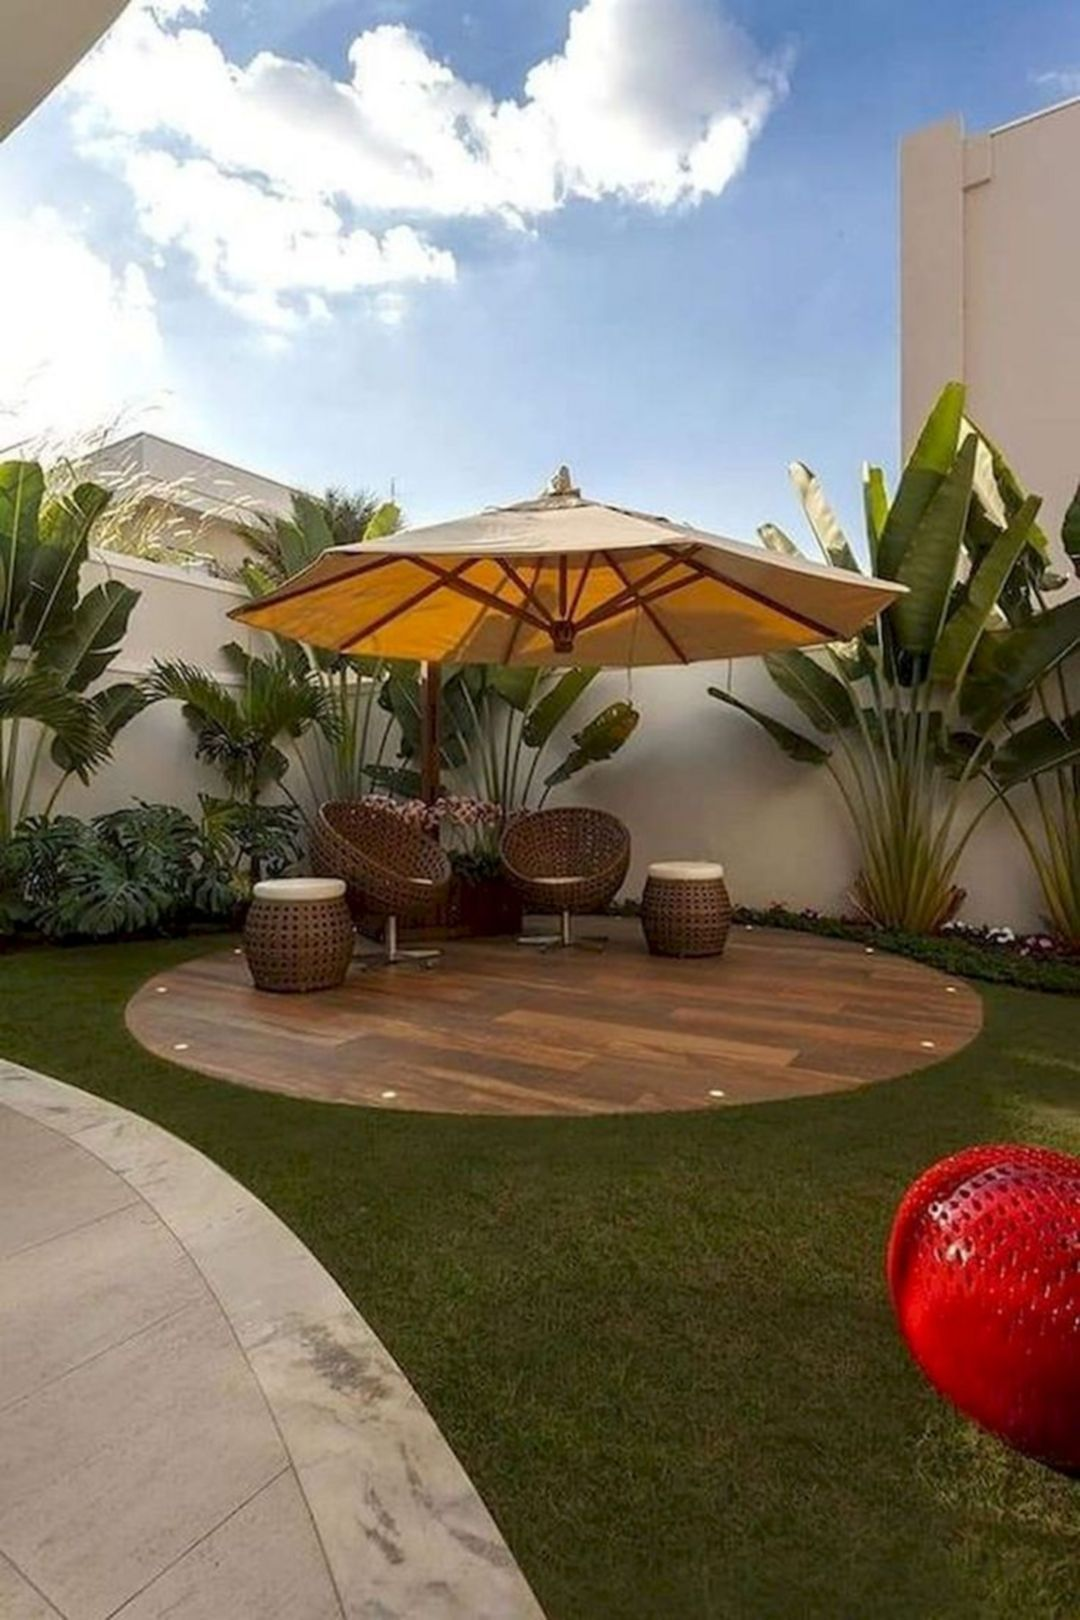 11 Ideal Small Garden Designs for Inspiring Your Home Yard